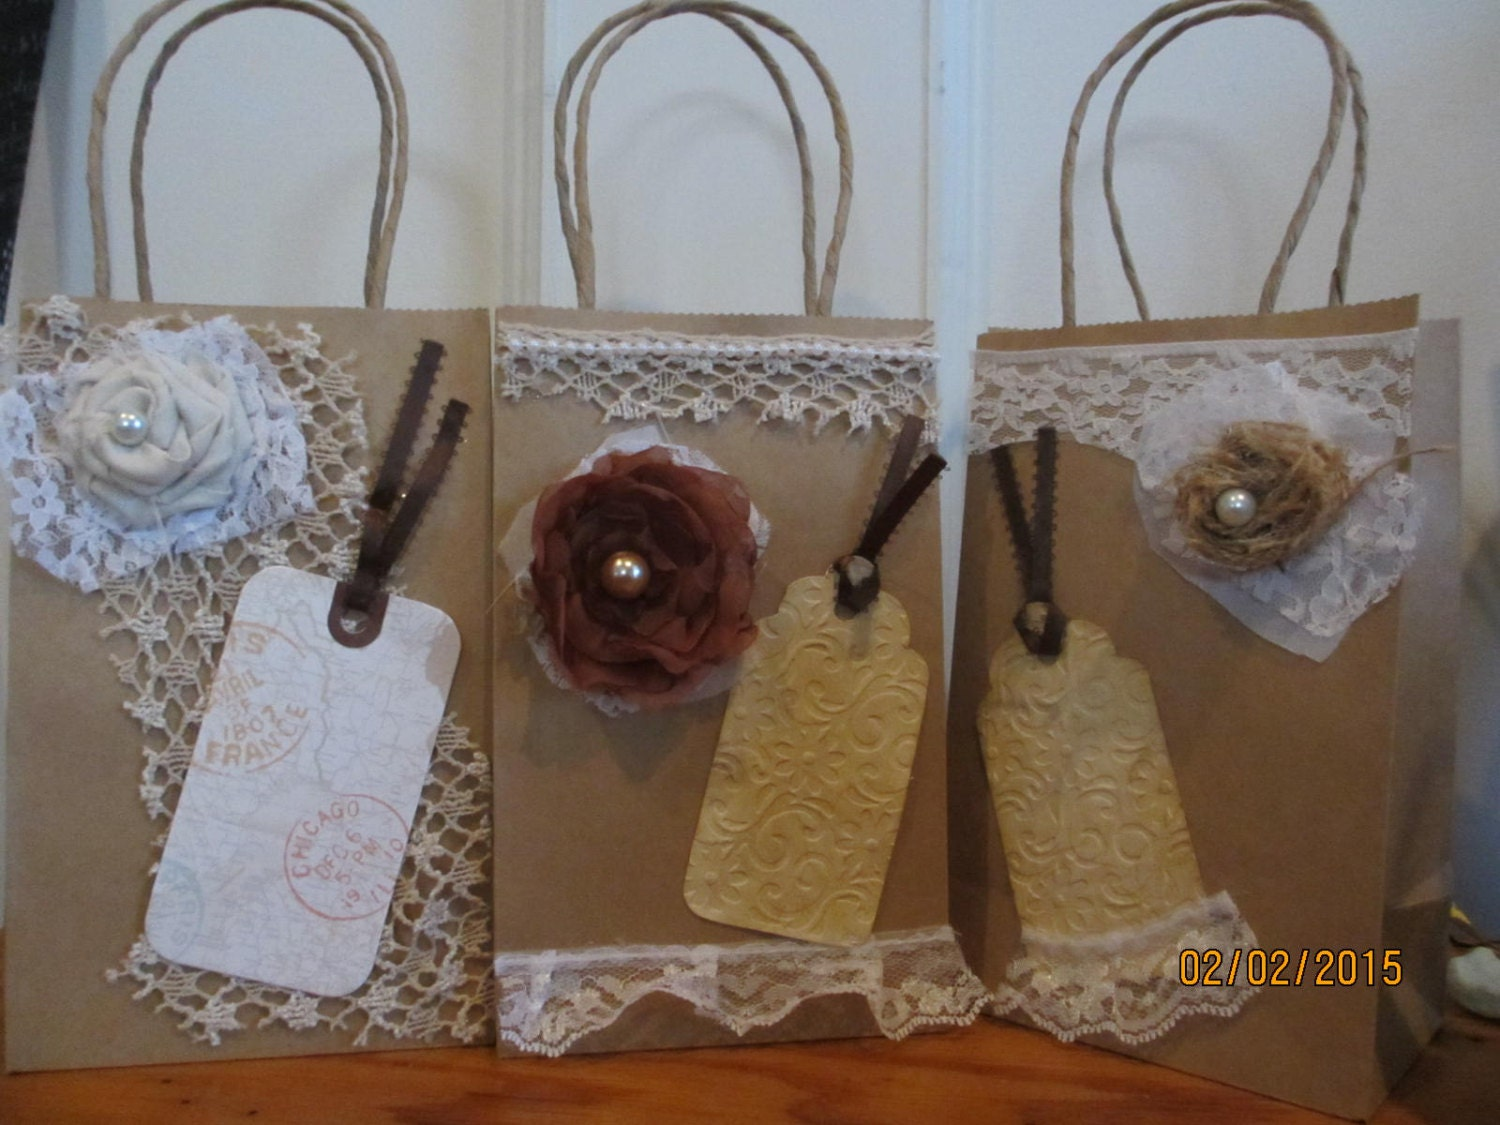 New Item Sale 5 Assorted Rustic Shabby Chic Hotel Wedding Guest Gift